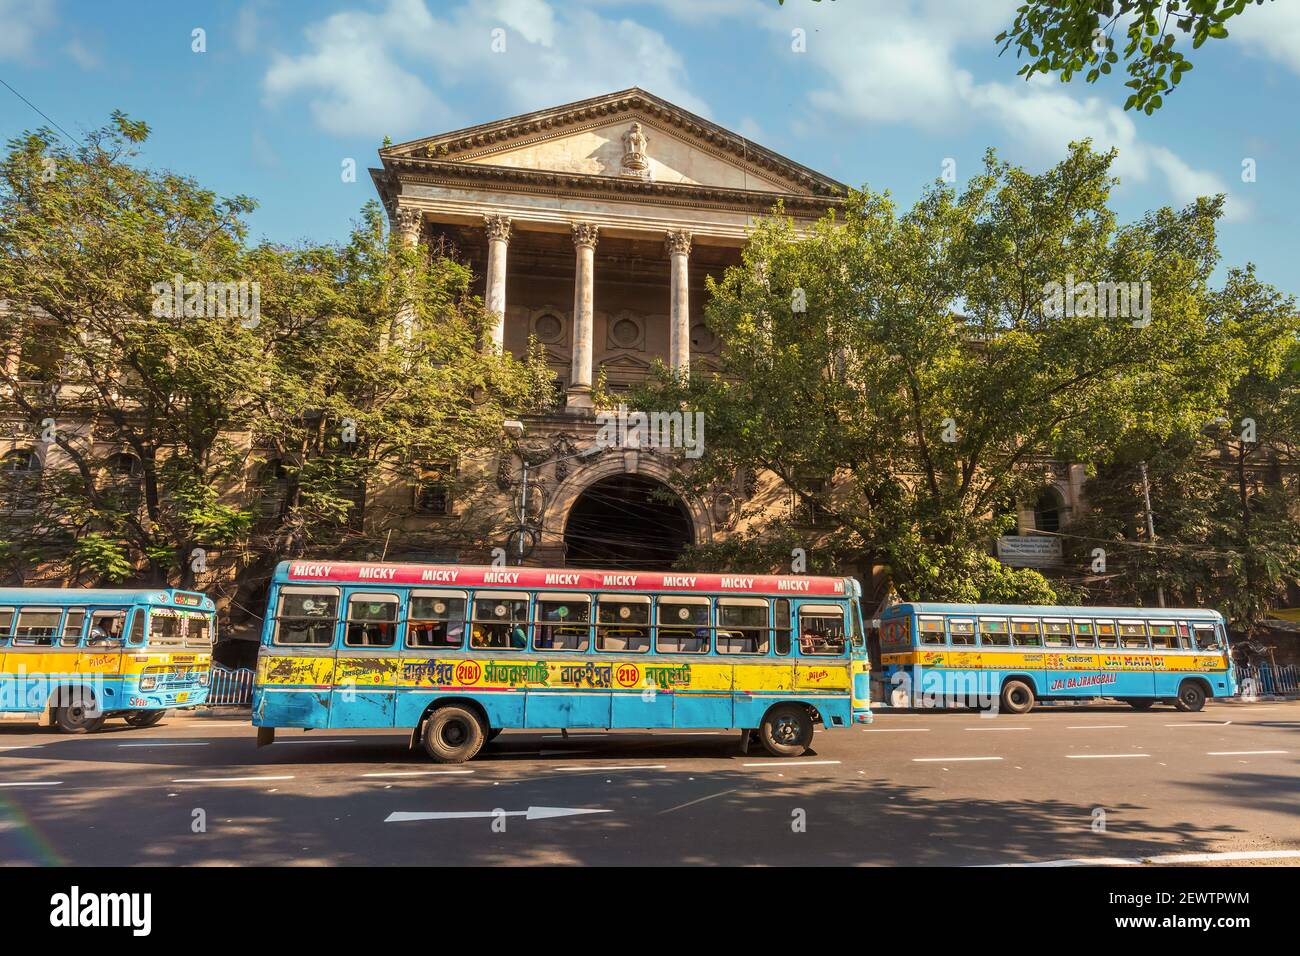 Public transport busses on city road in front of ancient heritage Government building at Dalhousie area of Kolkata Stock Photo